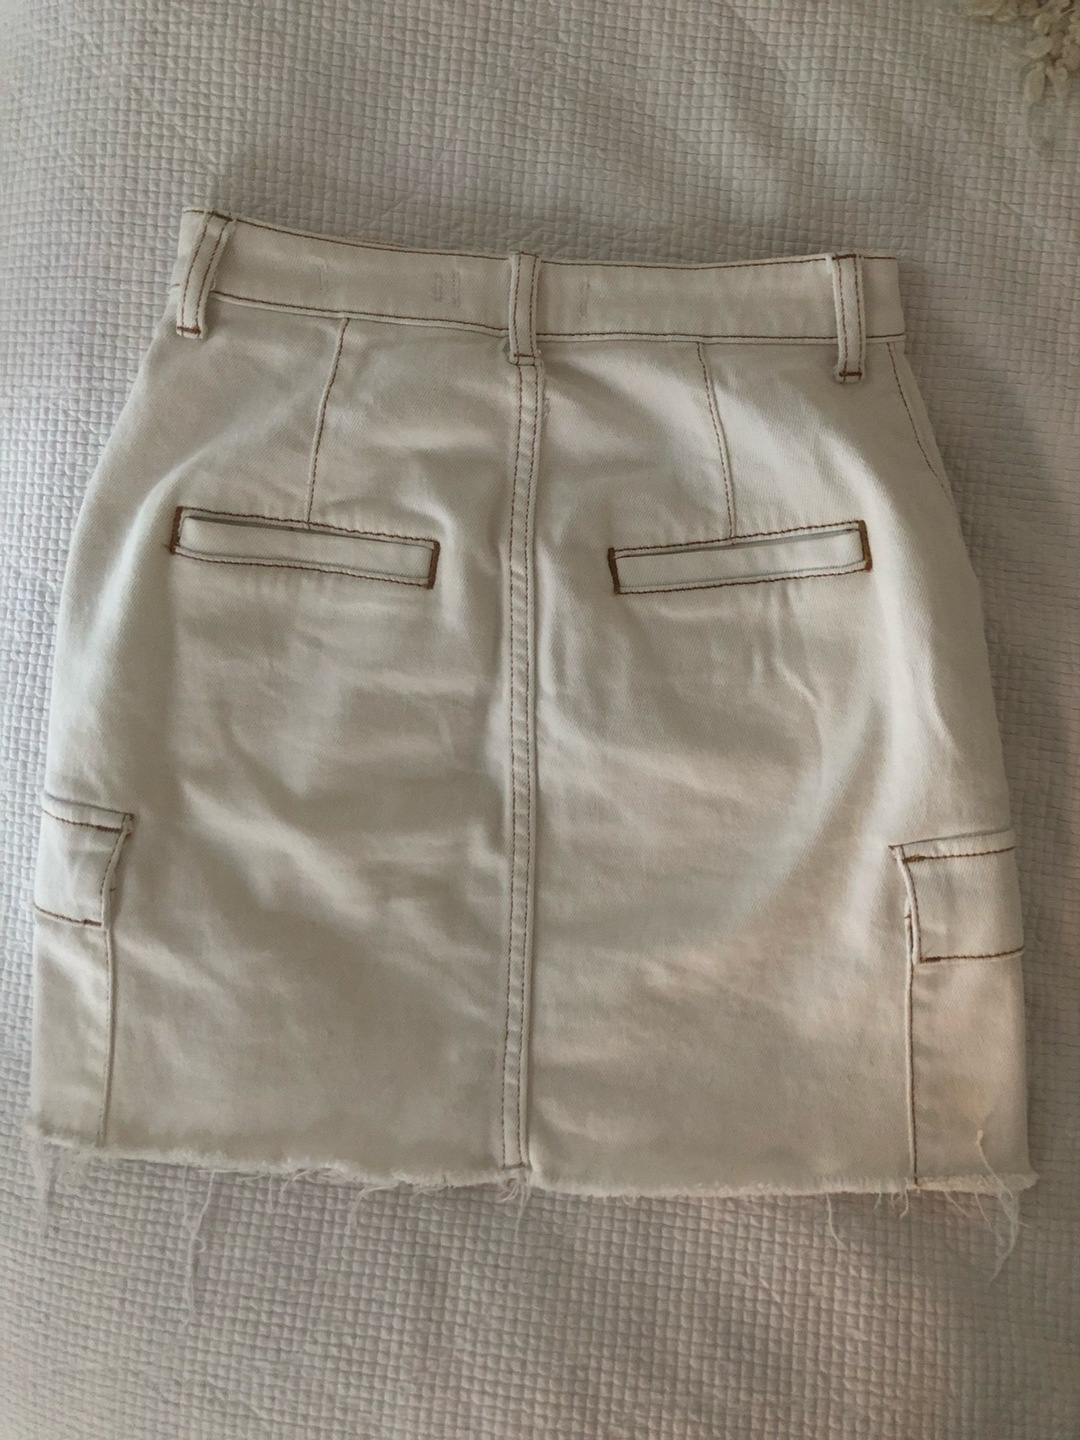 Women's skirts - HOLLISTER photo 2